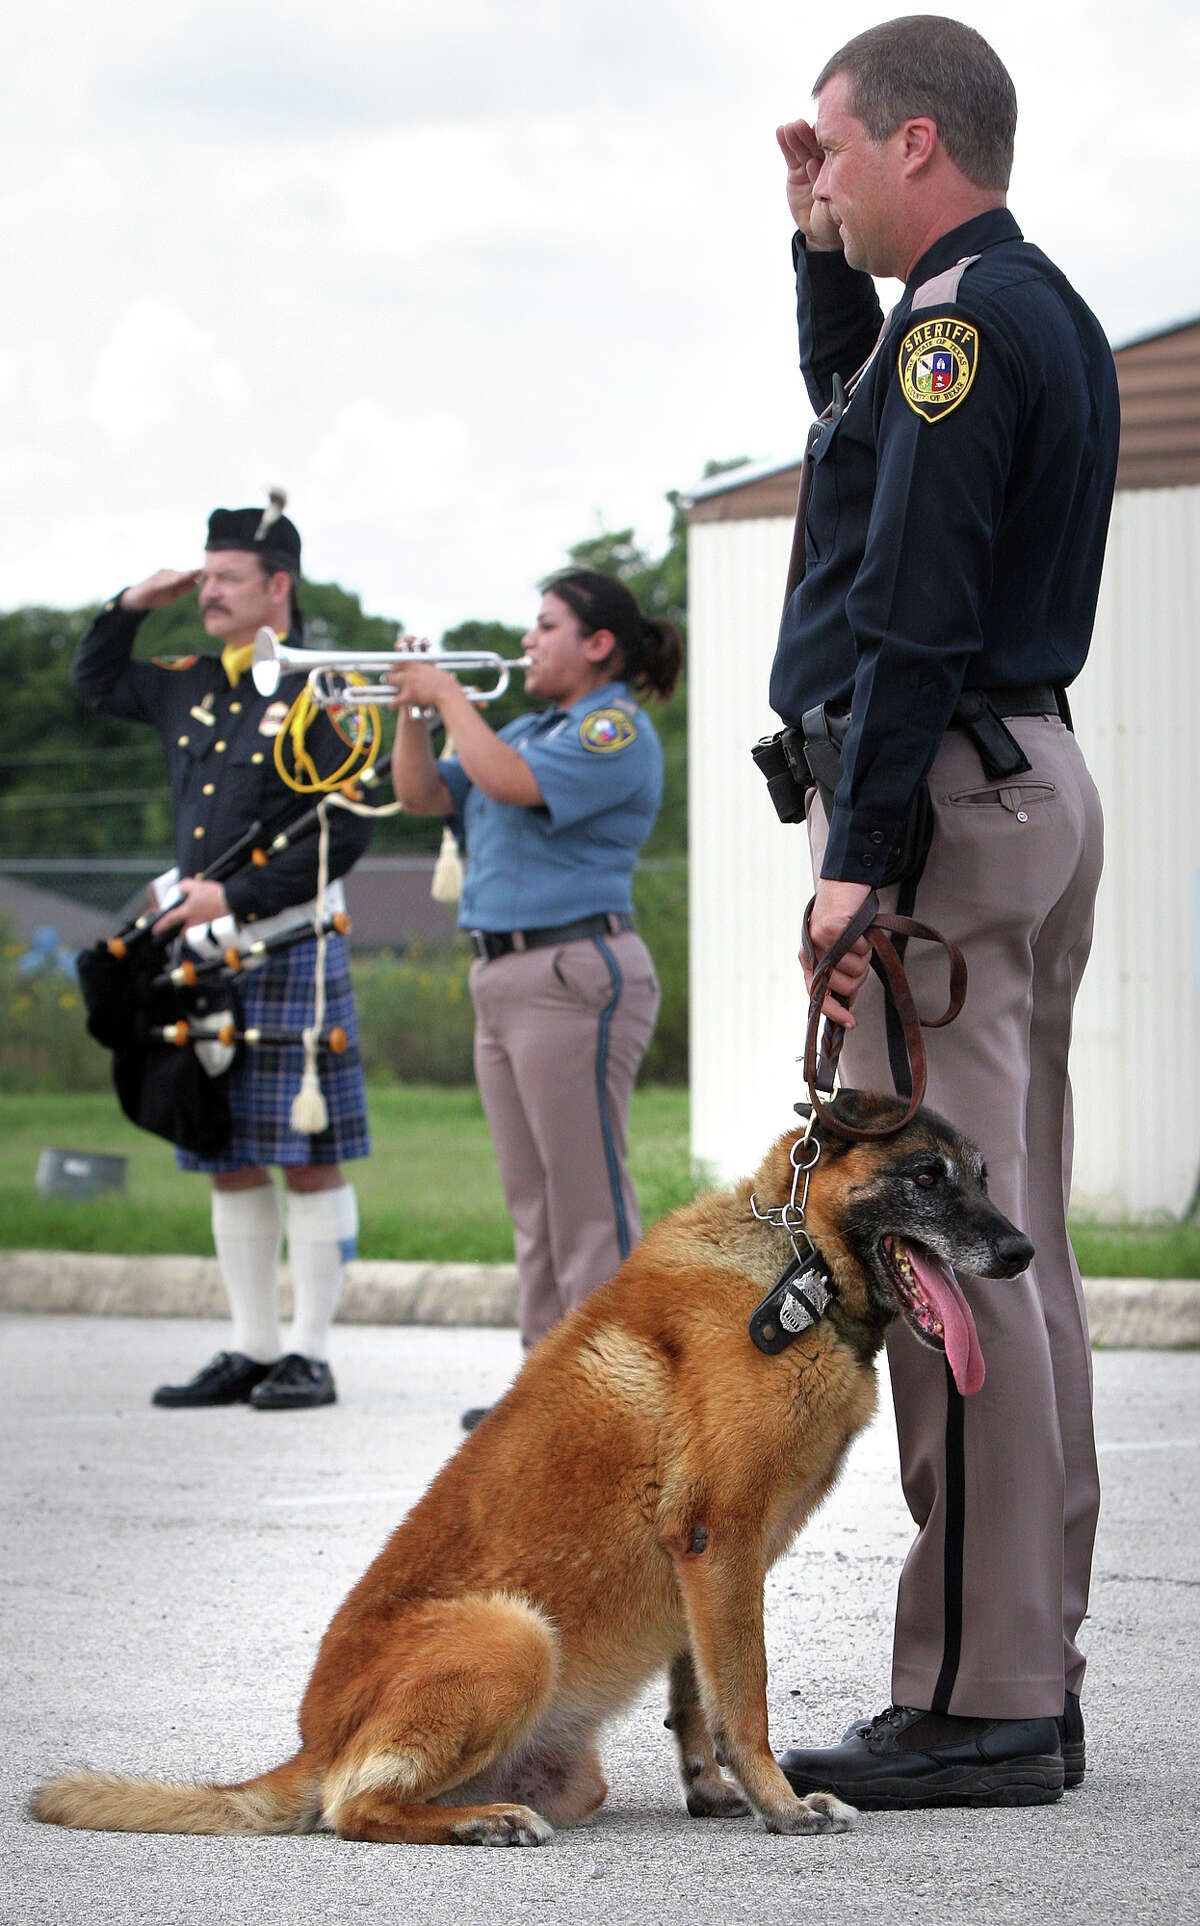 Metro daily - Deputy Steve Benoy, left, of the Bexar County Sheriff K9 Unit salutes as he holds his dog Blitz, as taps are played for Andor, badge number 007, who was retired today during a memorial service after passing away June 27, 2007, Friday, July 6, 2007.